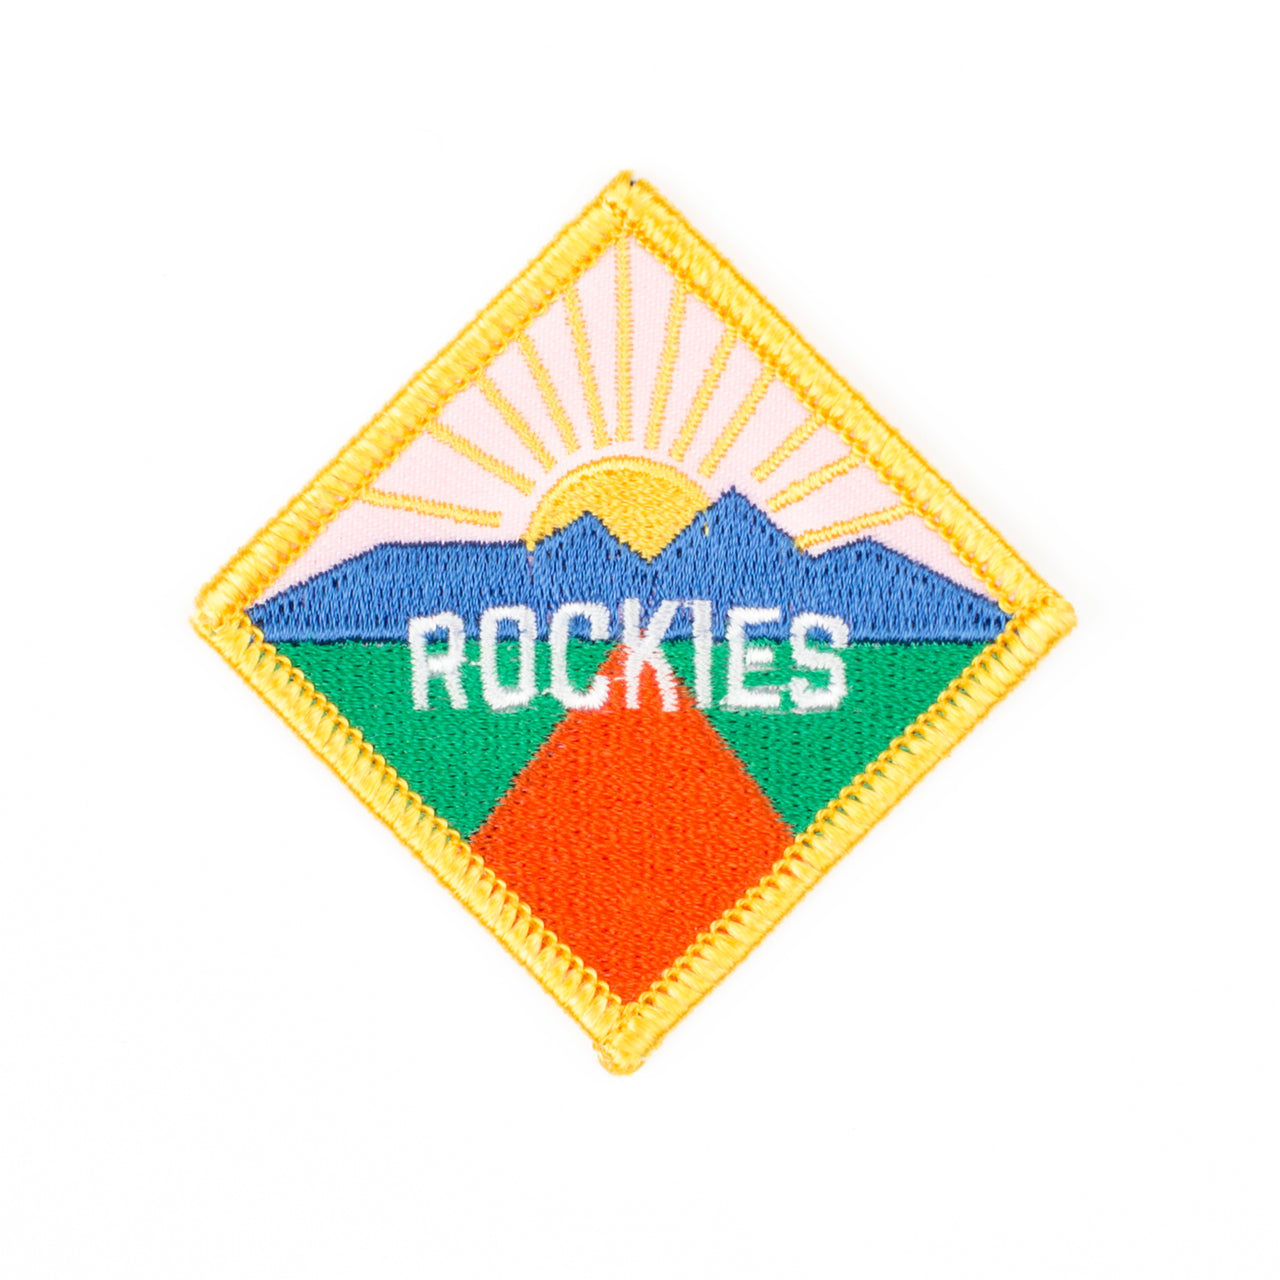 Iron on Patch - Rockies